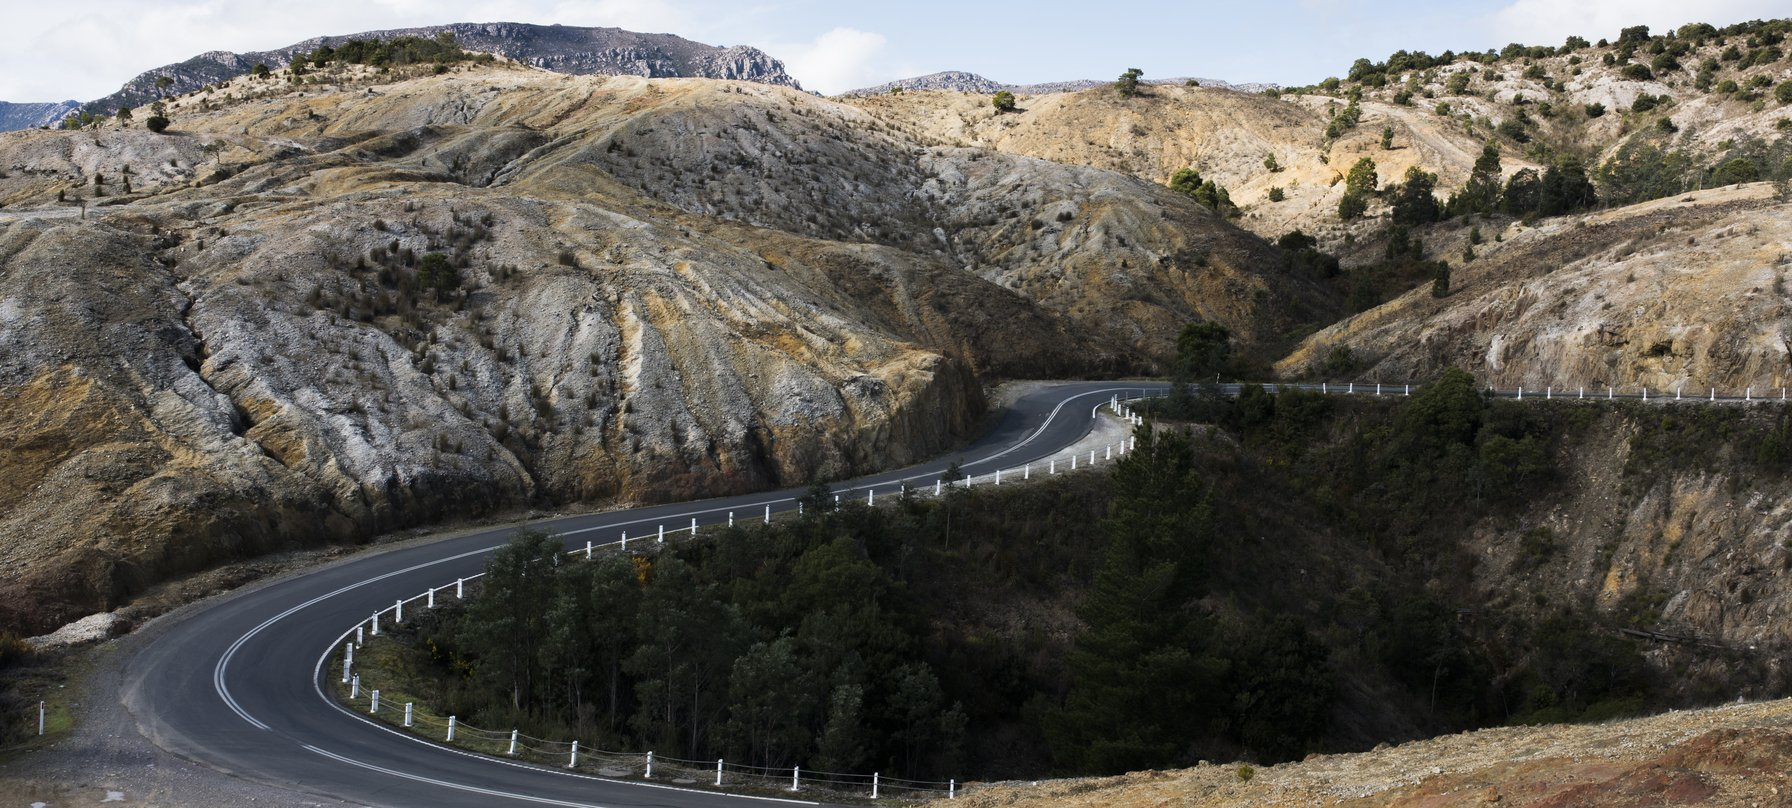 The road into Queenstown, known as the 99 bends.